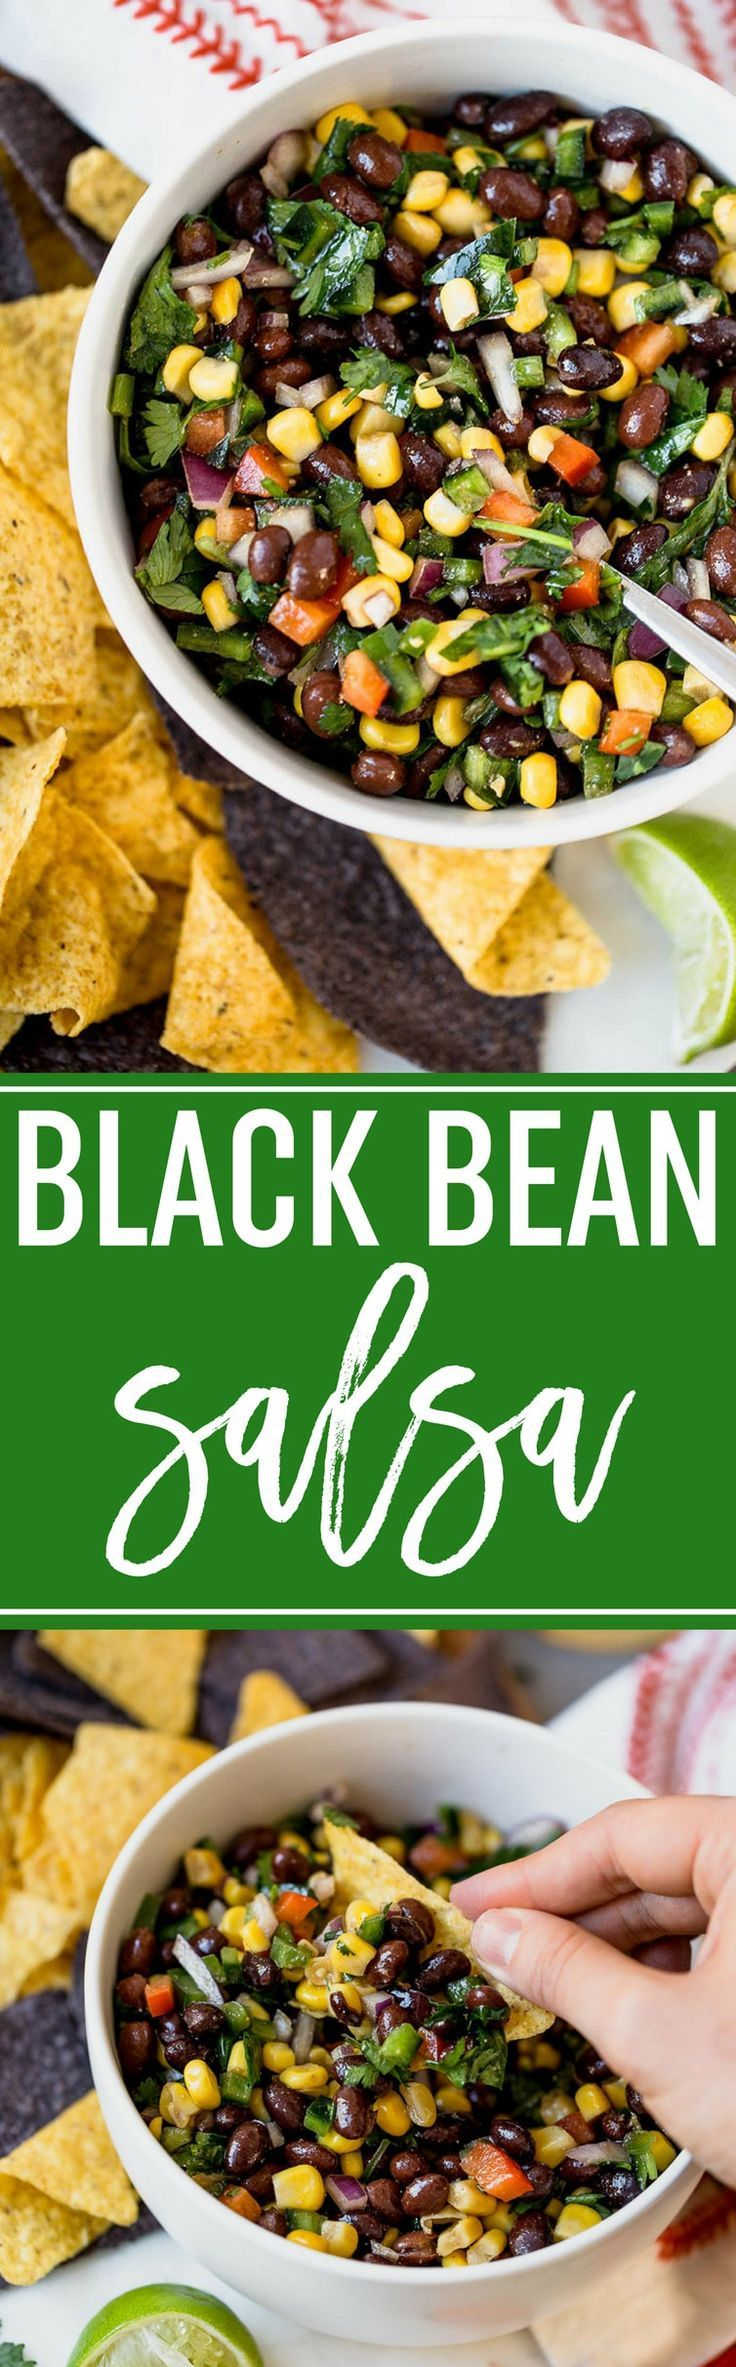 Black Bean Salsa :: Black bean and corn salsa is super fresh and totally bursting with flavor. It's the perfect addition to your next party! via @browneyedbaker